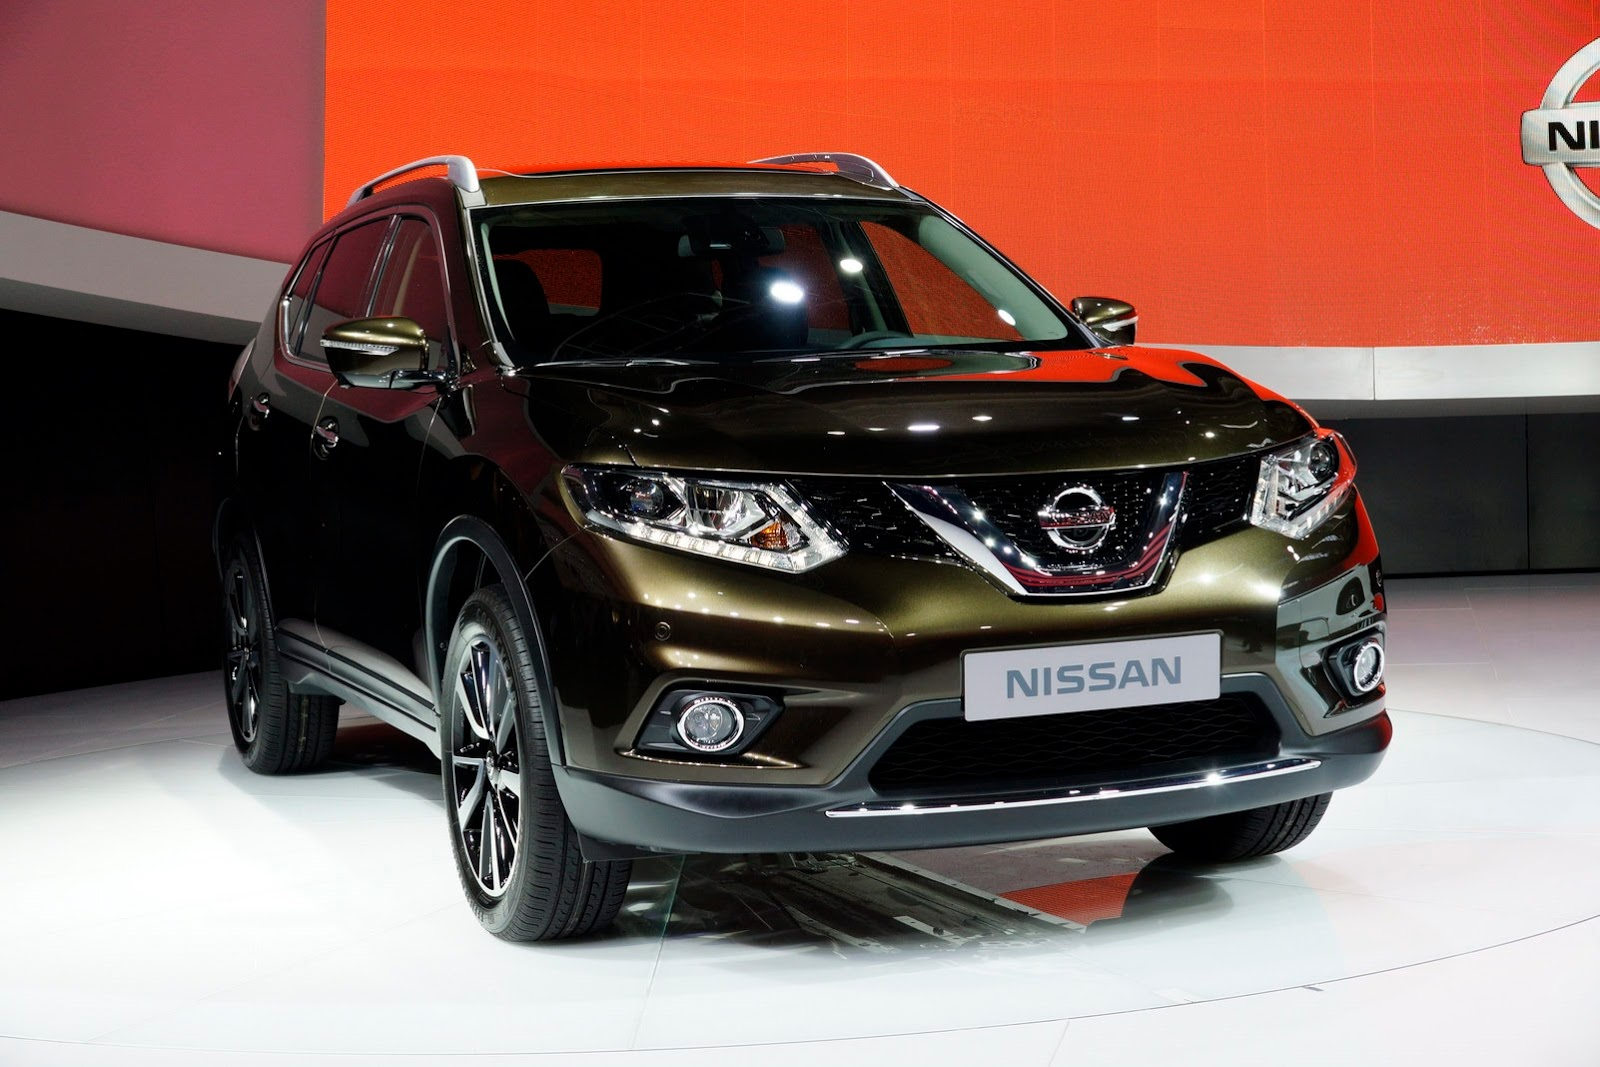 2014 Nissan X Trail 7 Seater | Autos Weblog